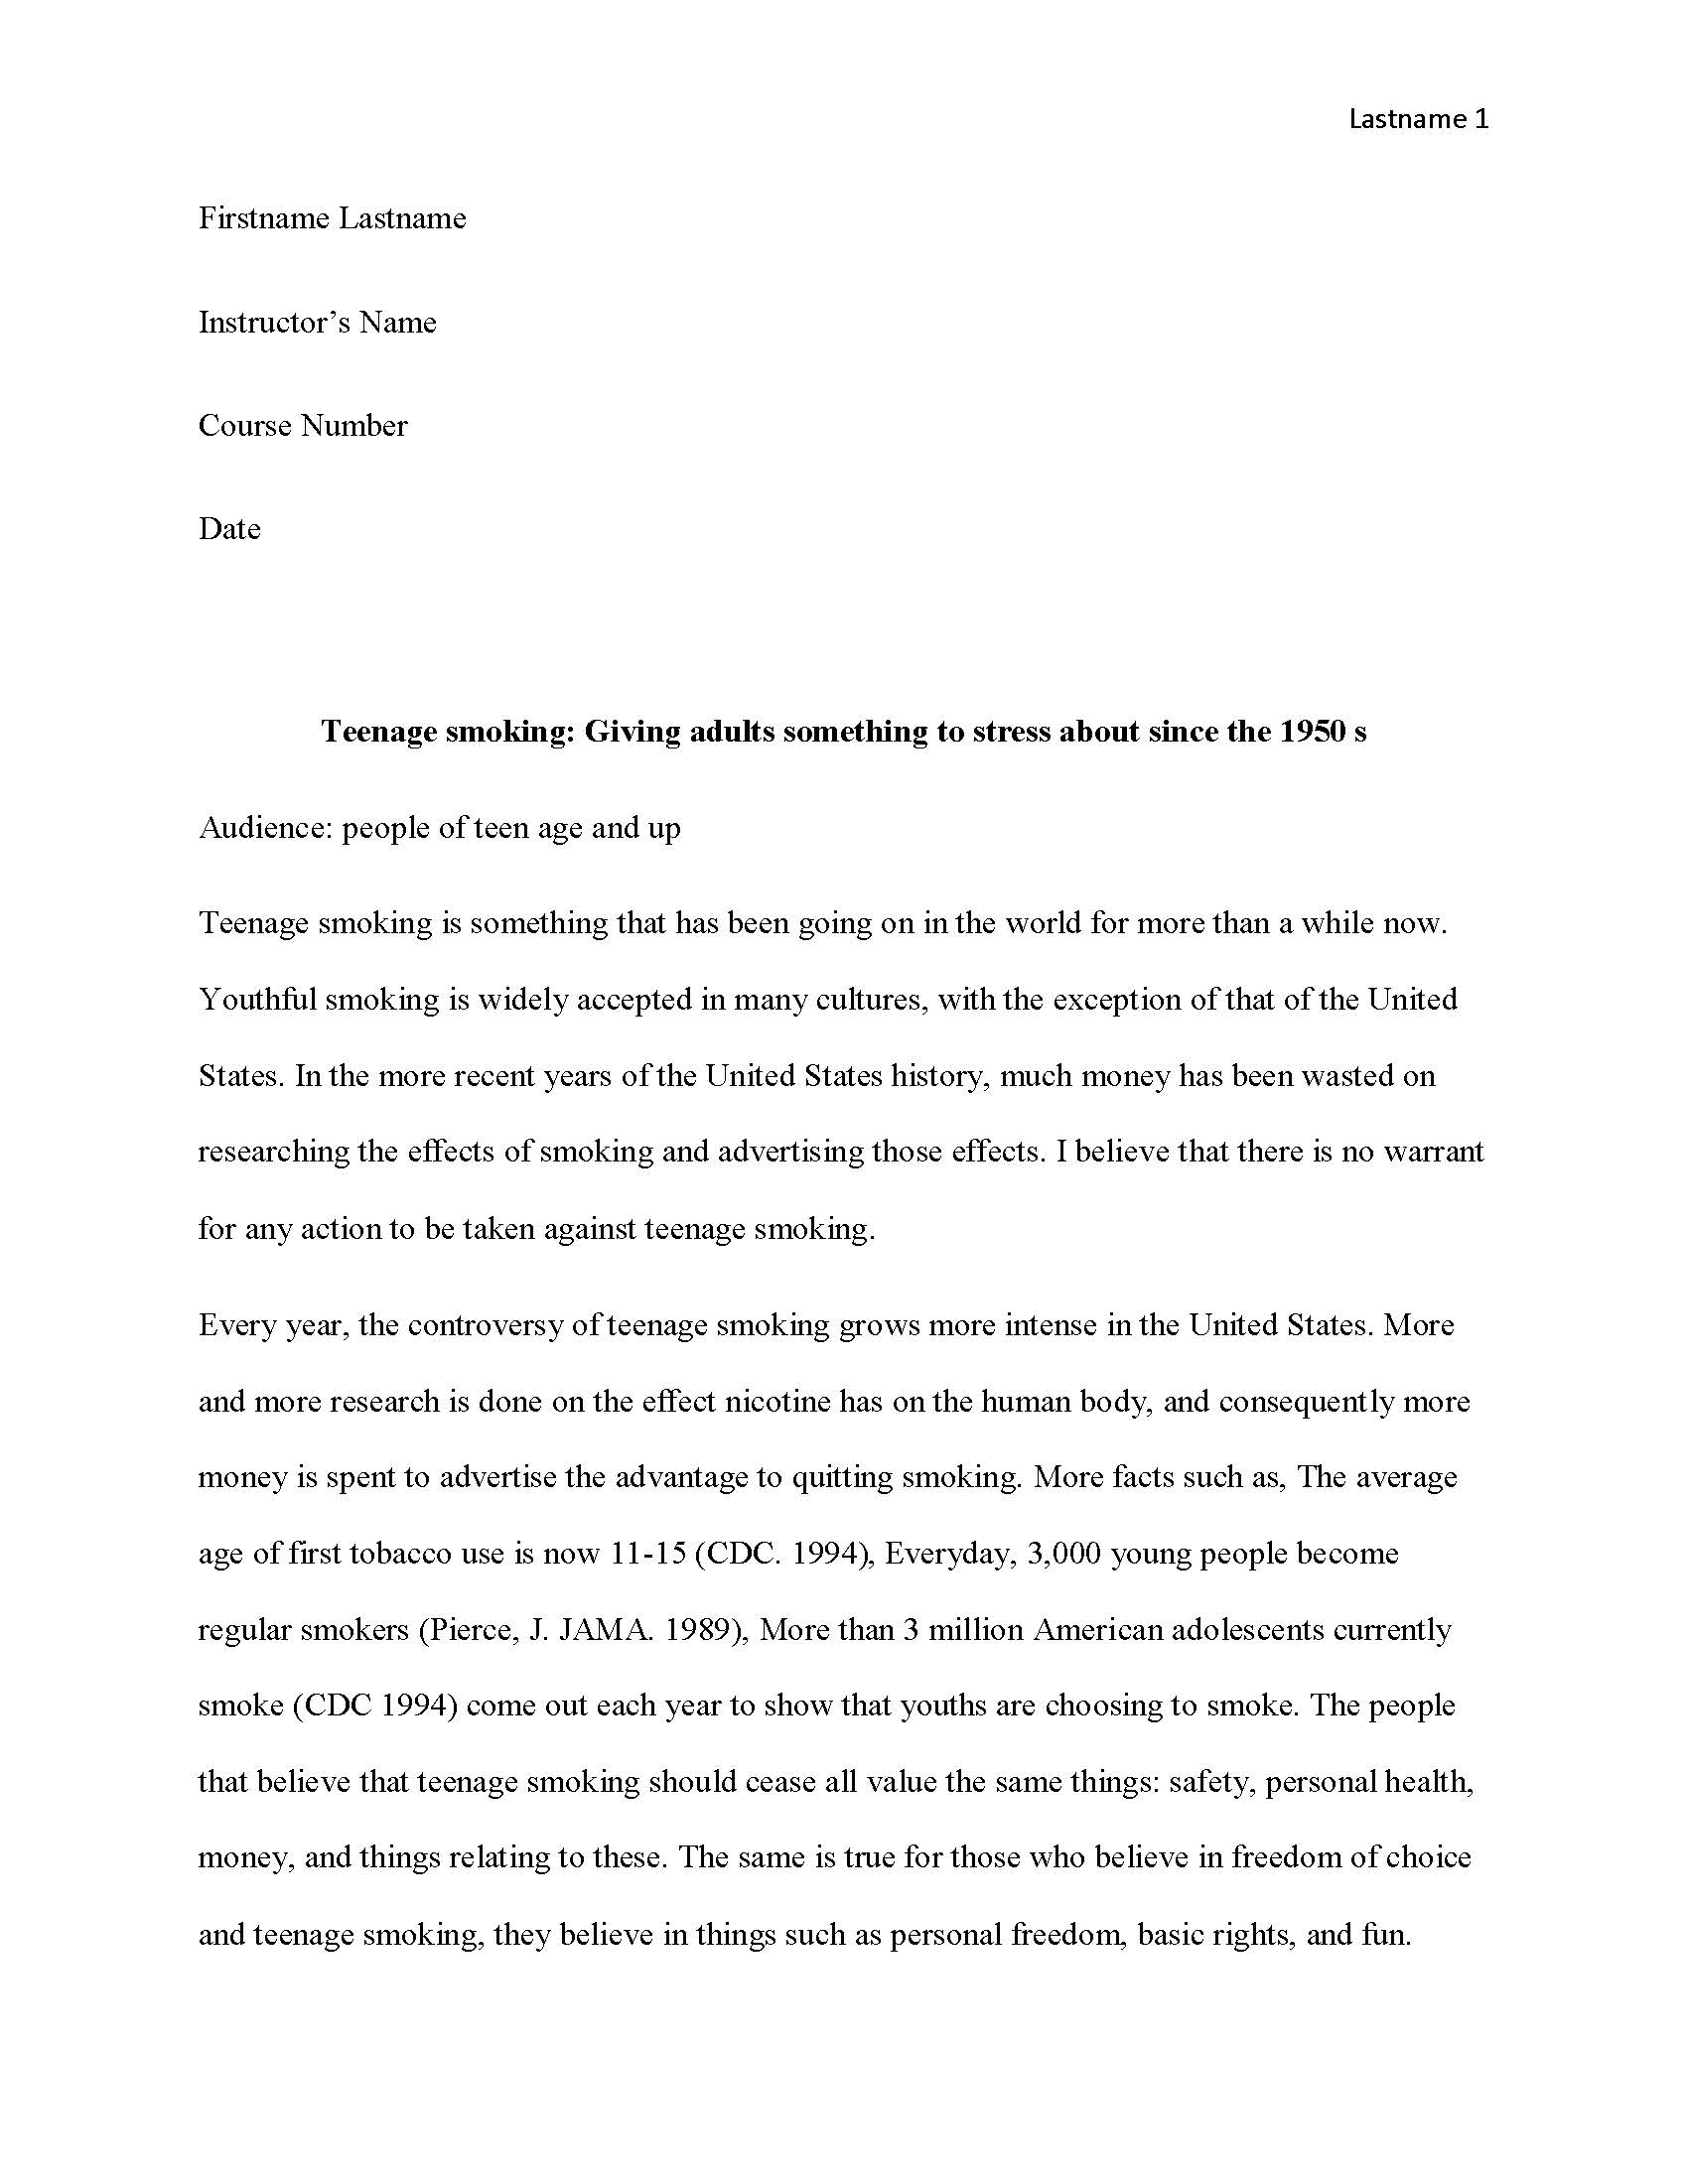 The Tell Tale Heart Essay Intro Paragraph Essay Thetelltaleheart